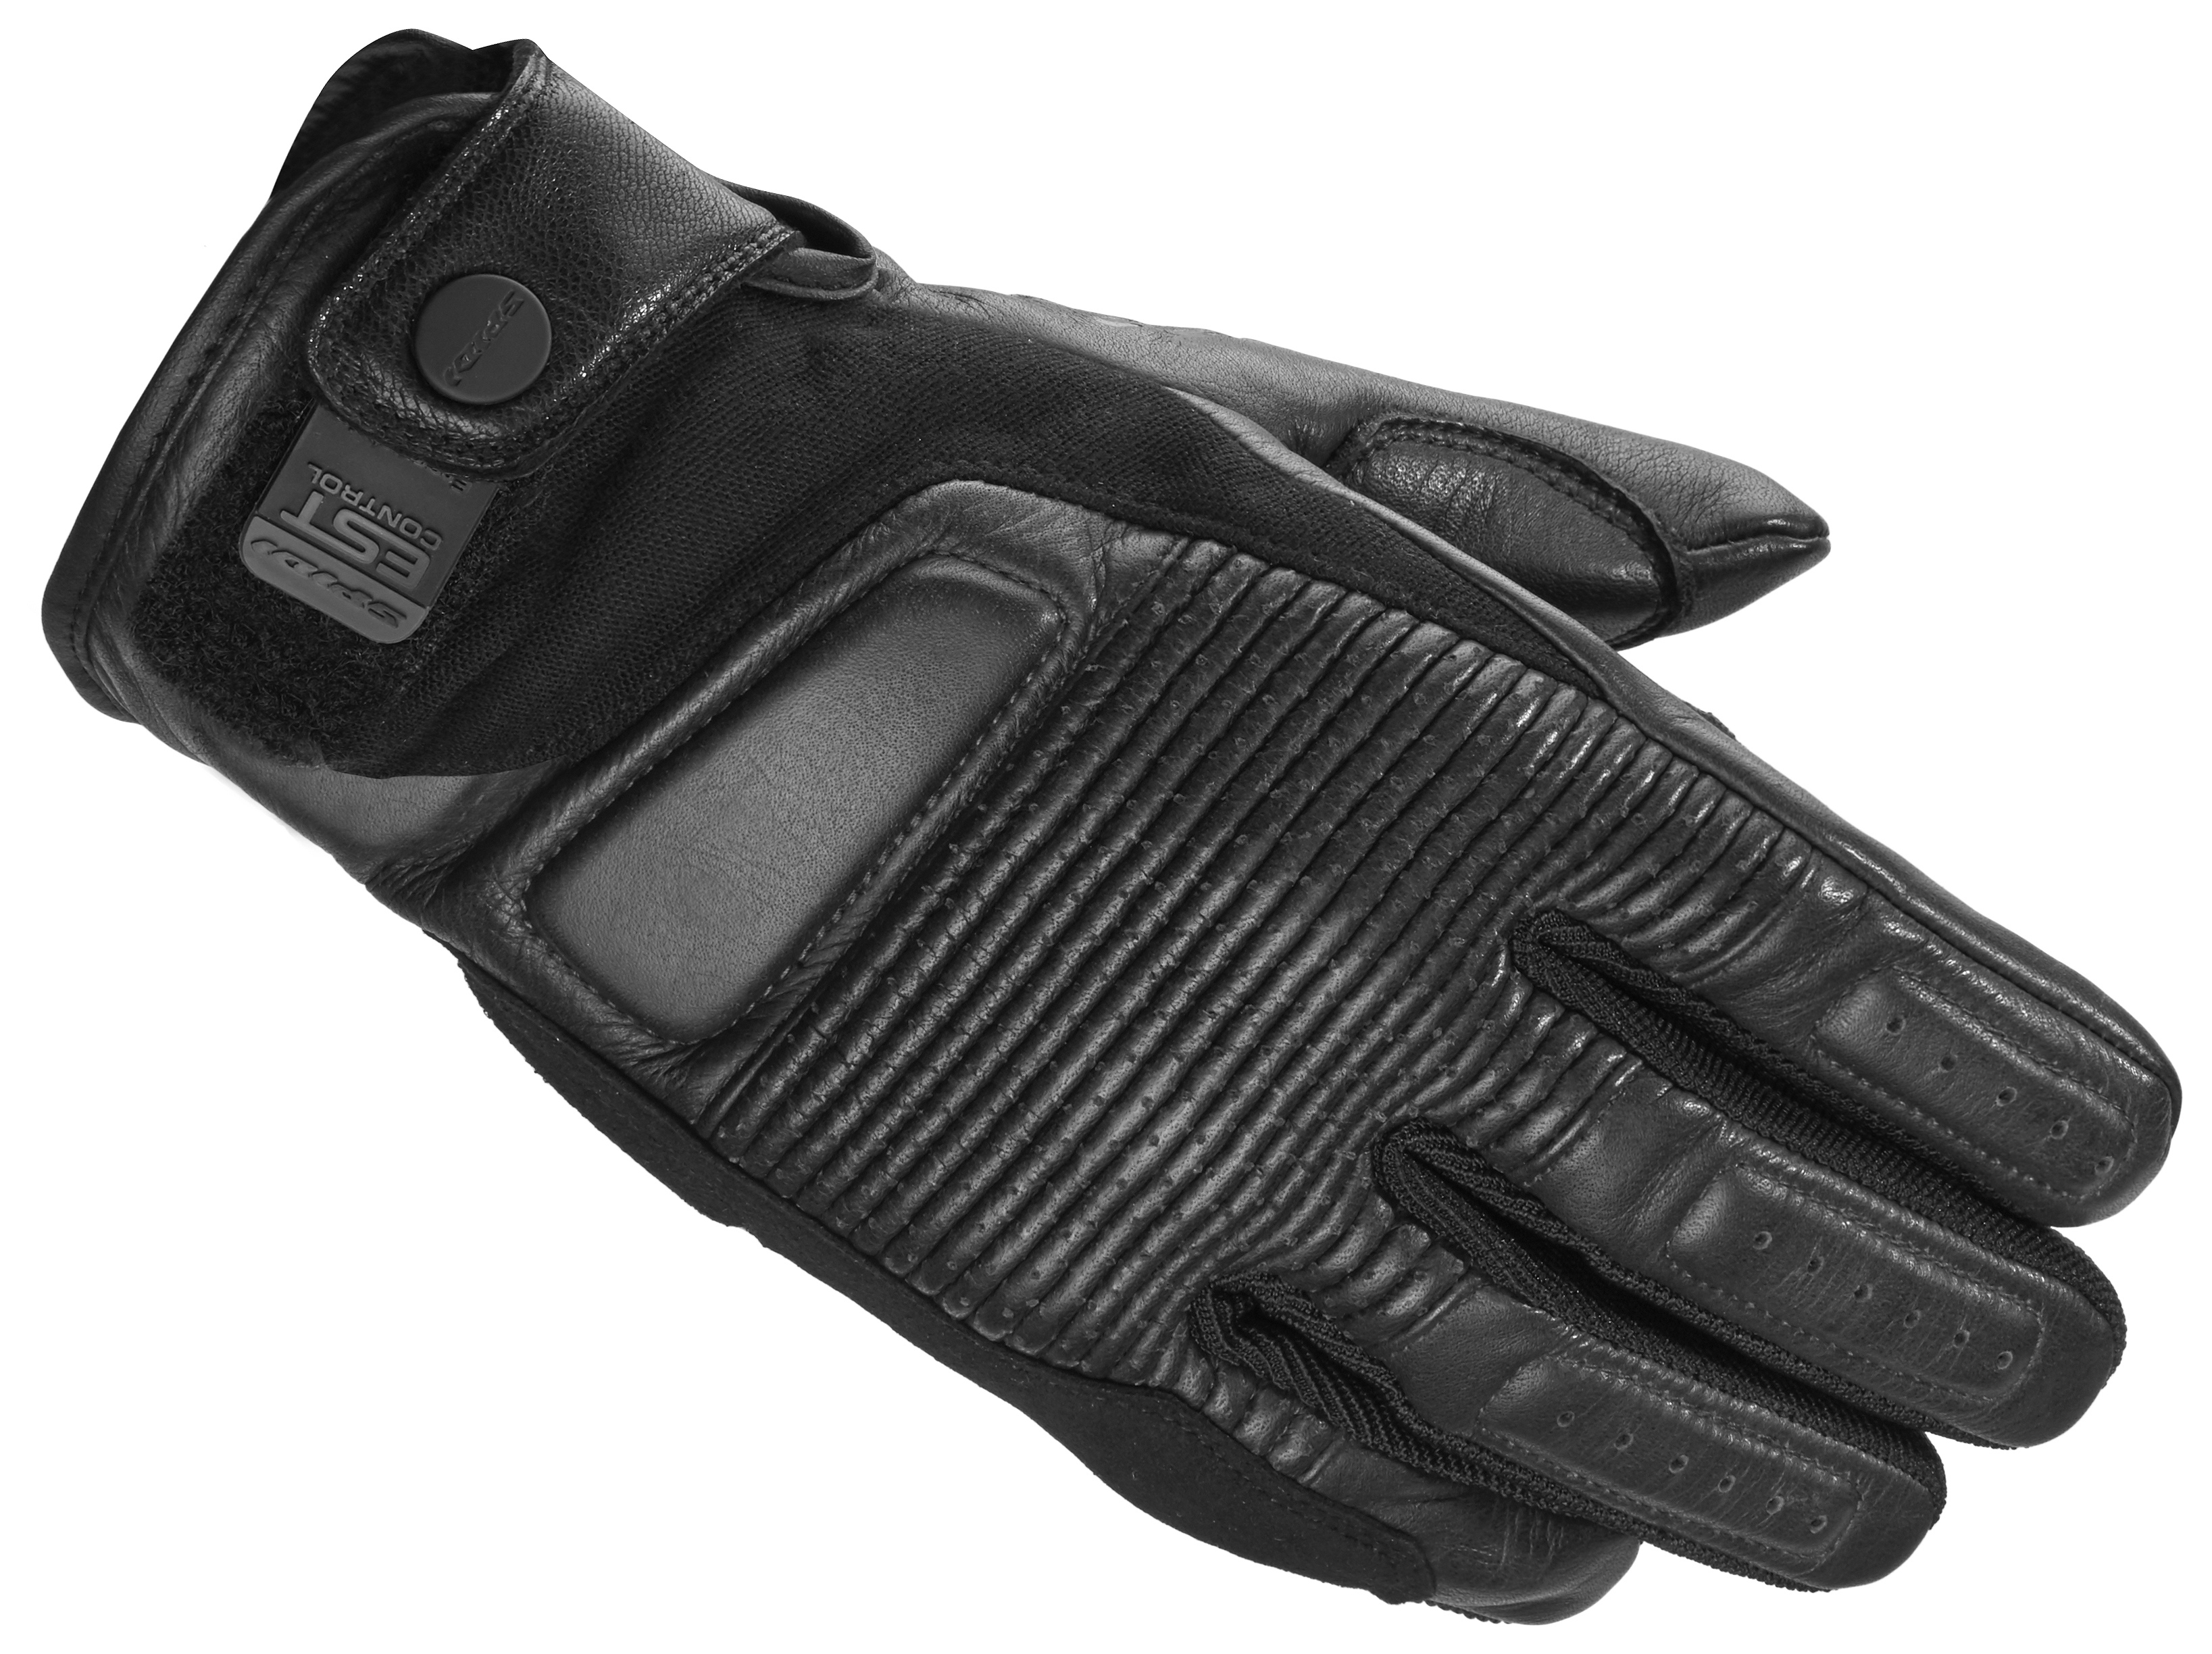 Mens gloves sports direct - Mens Gloves Sports Direct 50